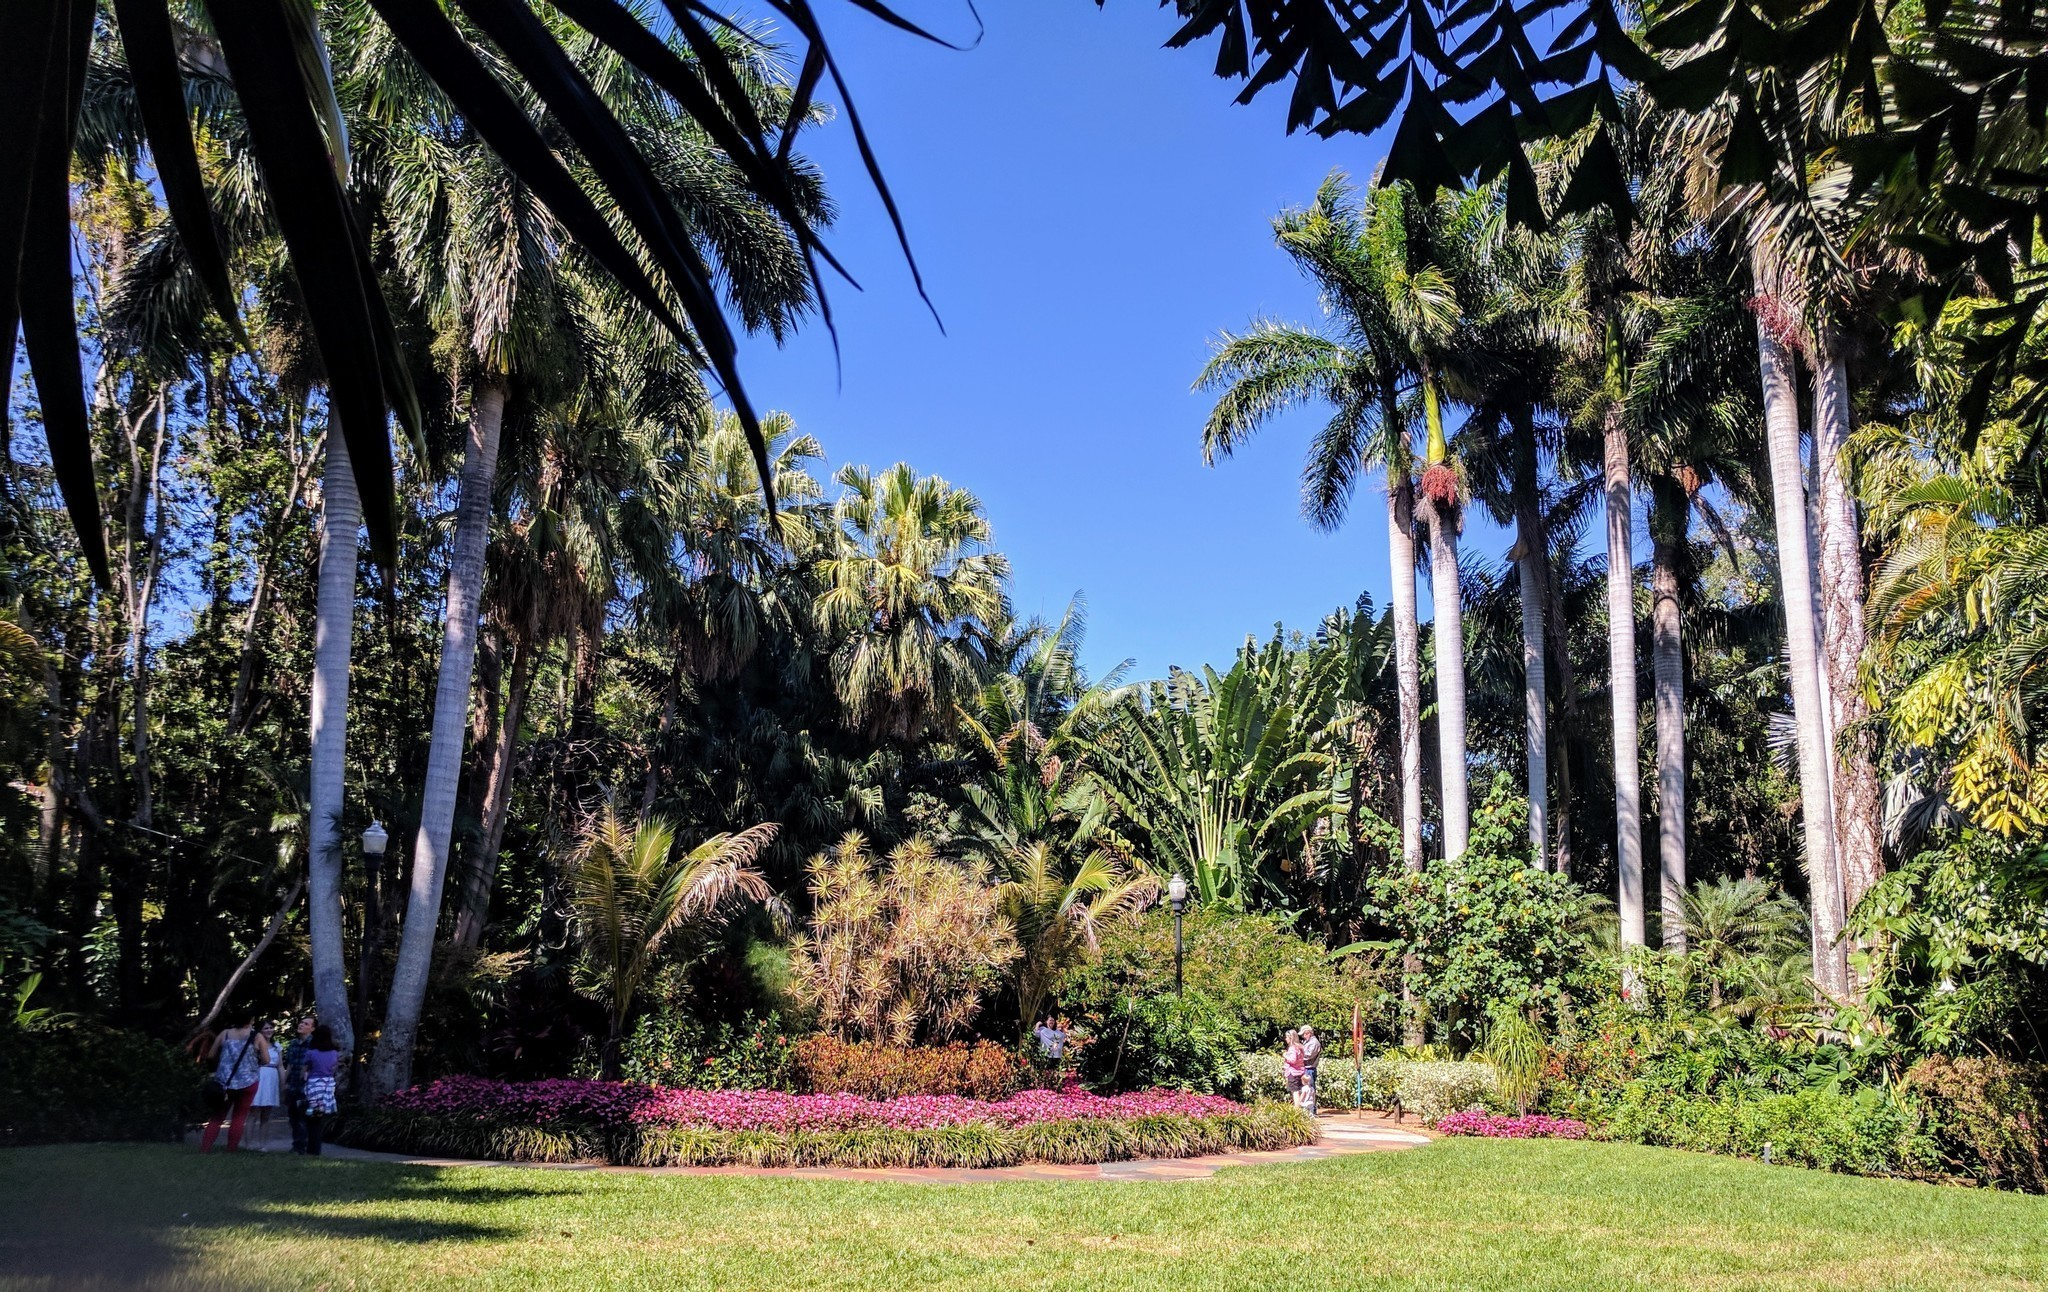 St Petersburg 39 S Historic Sunken Gardens Melts Stress Away Orlando Sentinel